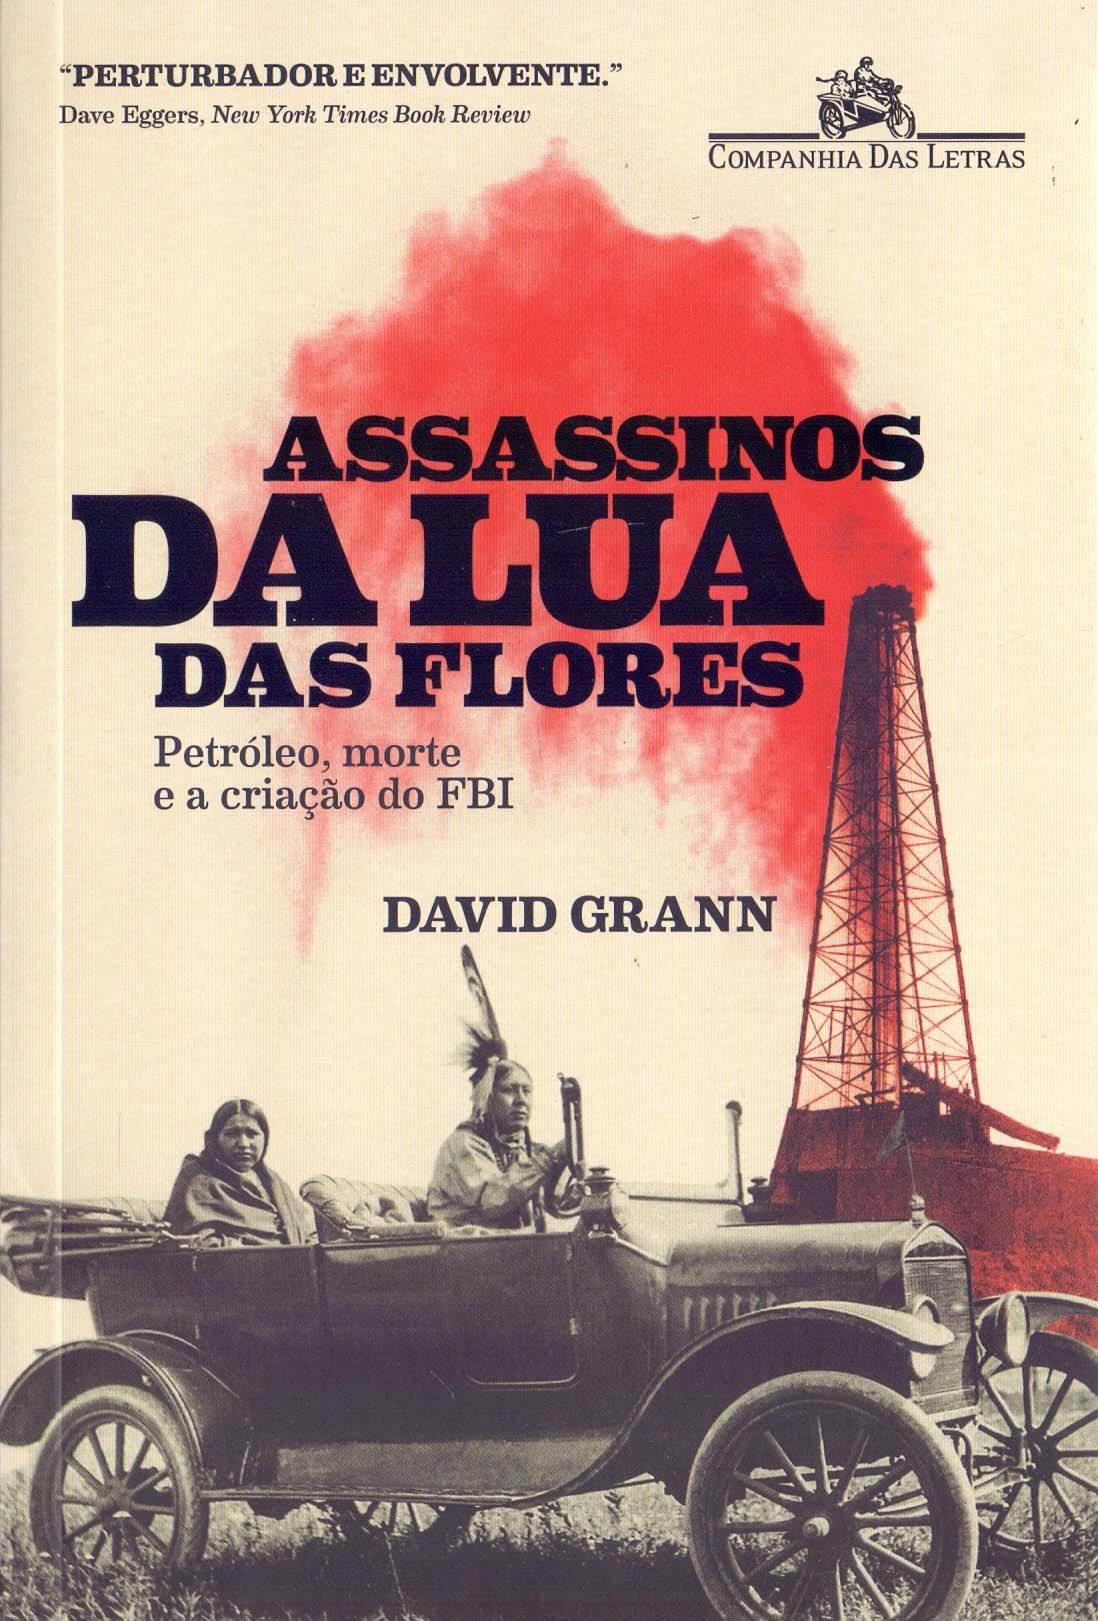 Assassinhos da lua das flores